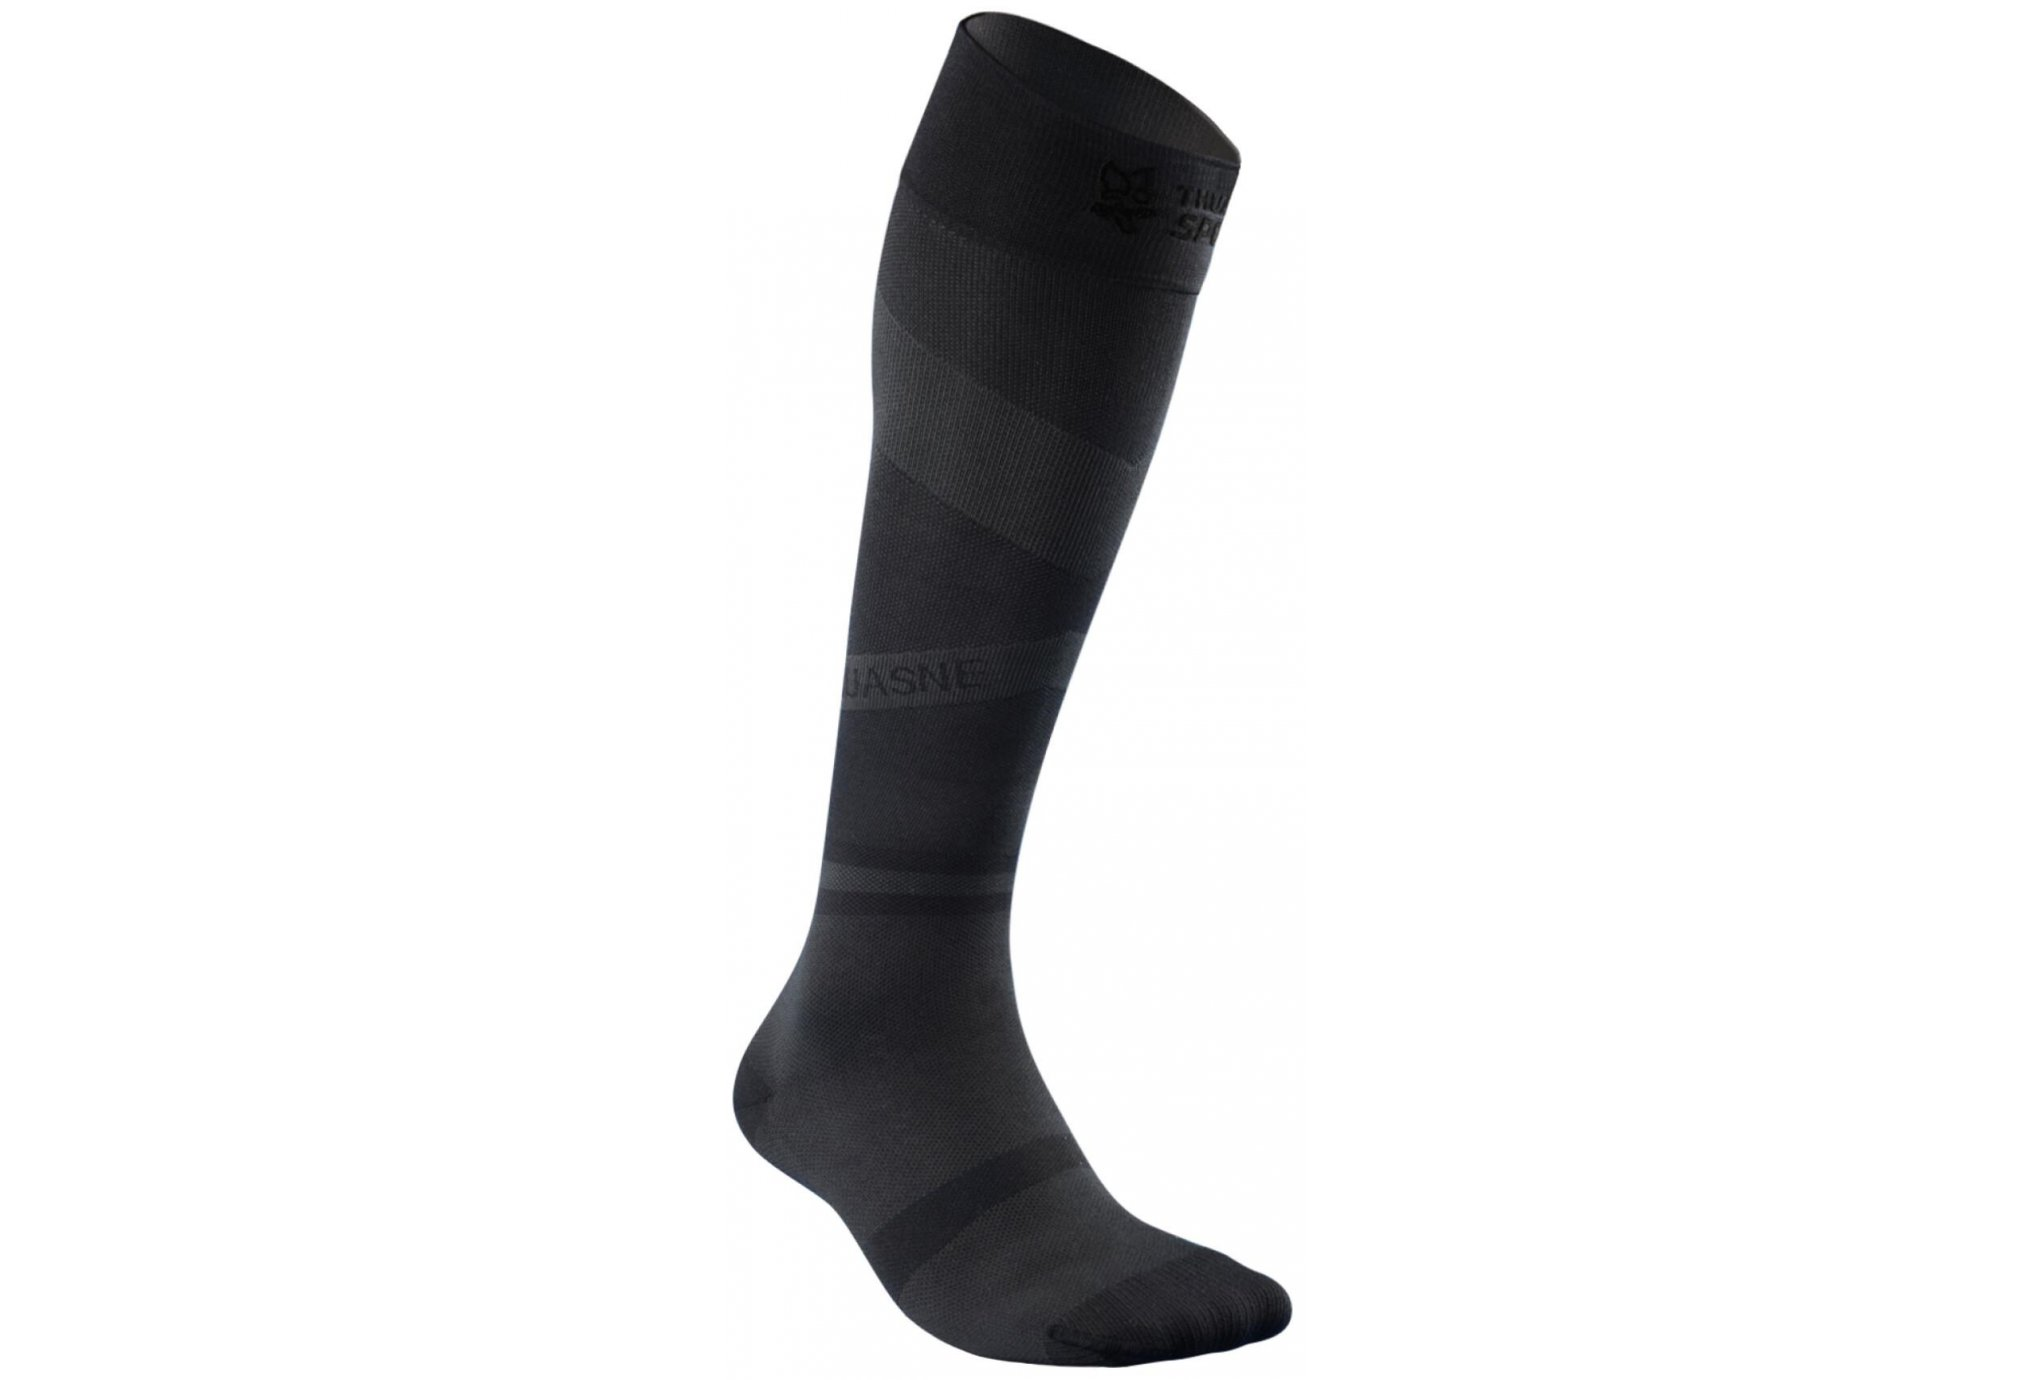 Thuasne Up Recovery Long Chaussettes